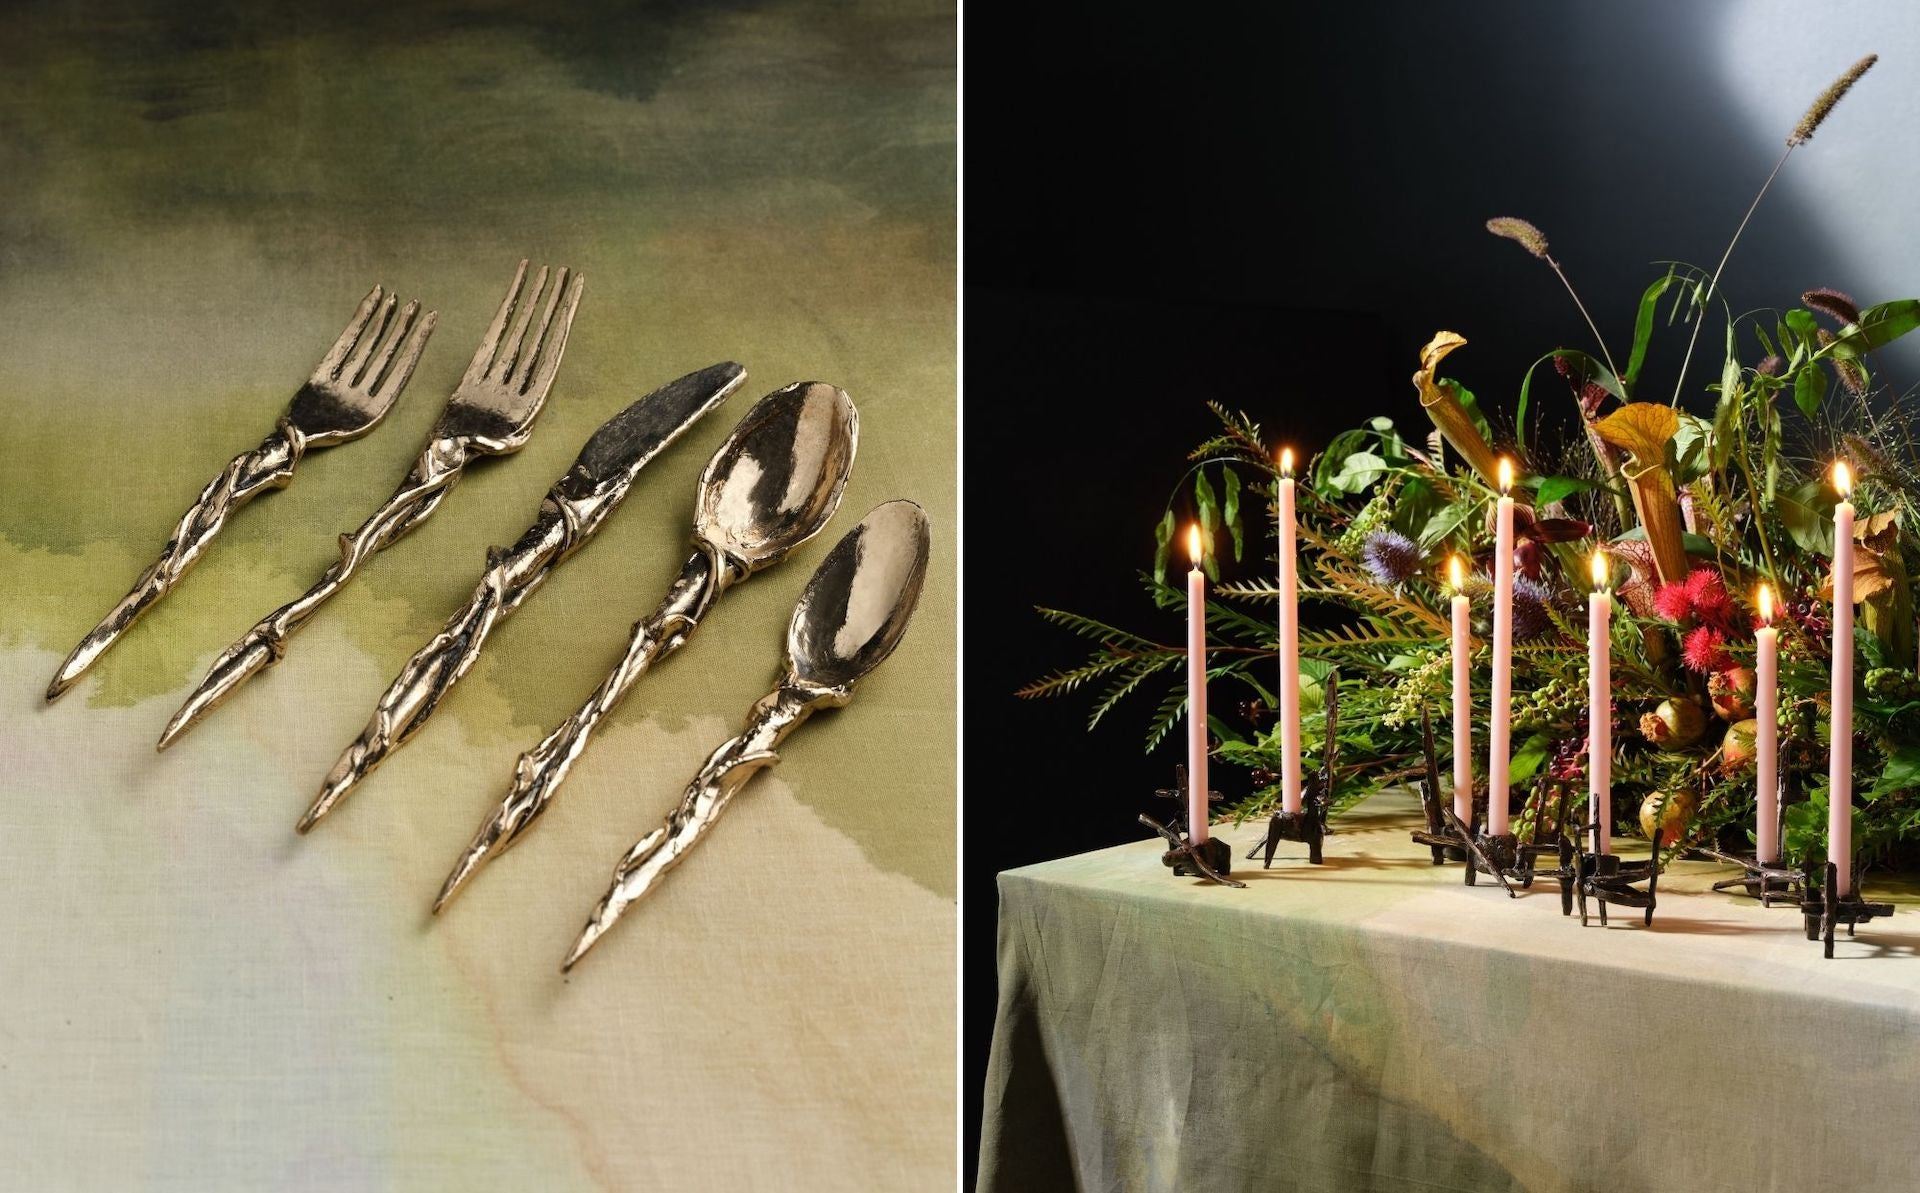 Bronze Silverware and Candlesticks by Farrell Hundley for The Feast. Photos © DM/BX